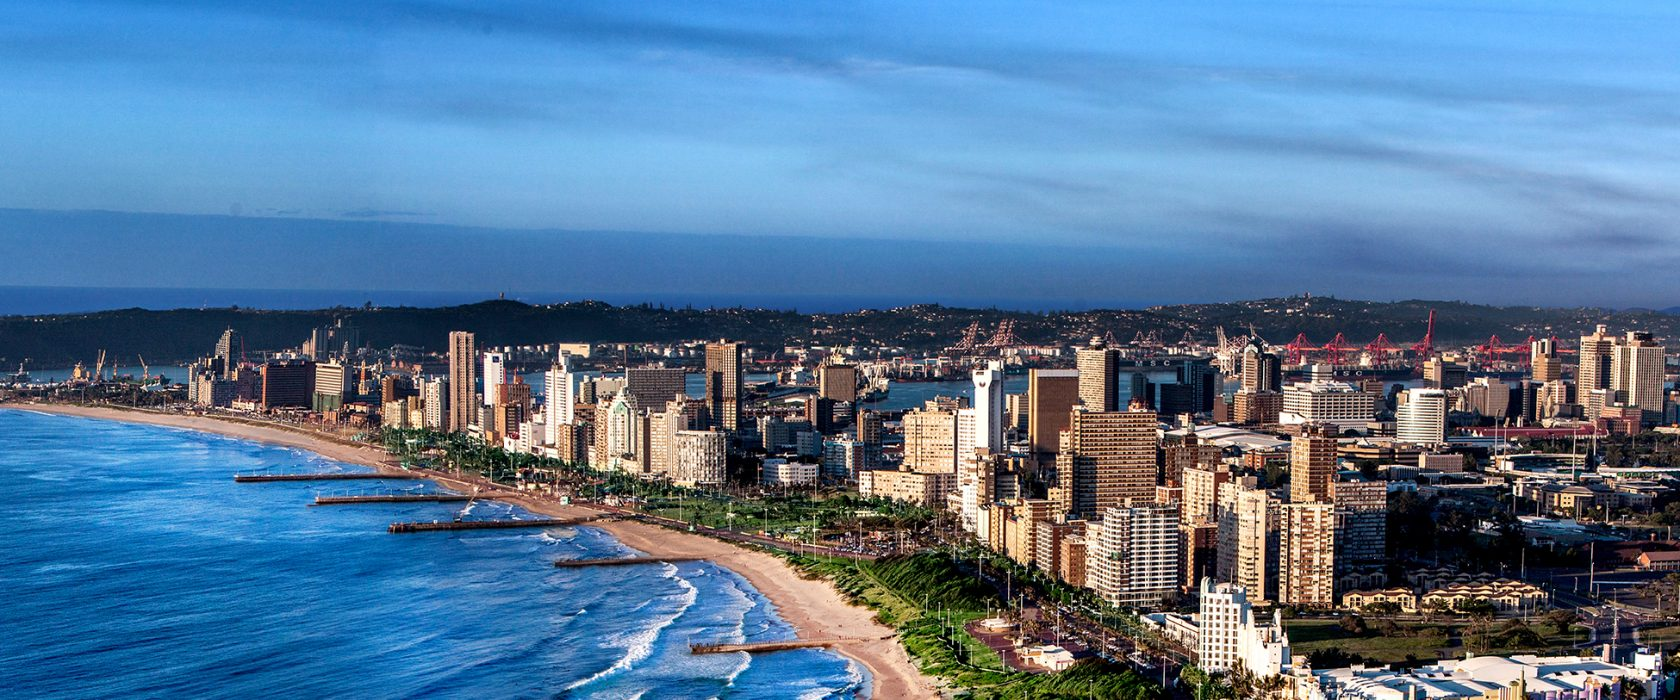 Durban Attraction Aerial View Of Durban Facing South